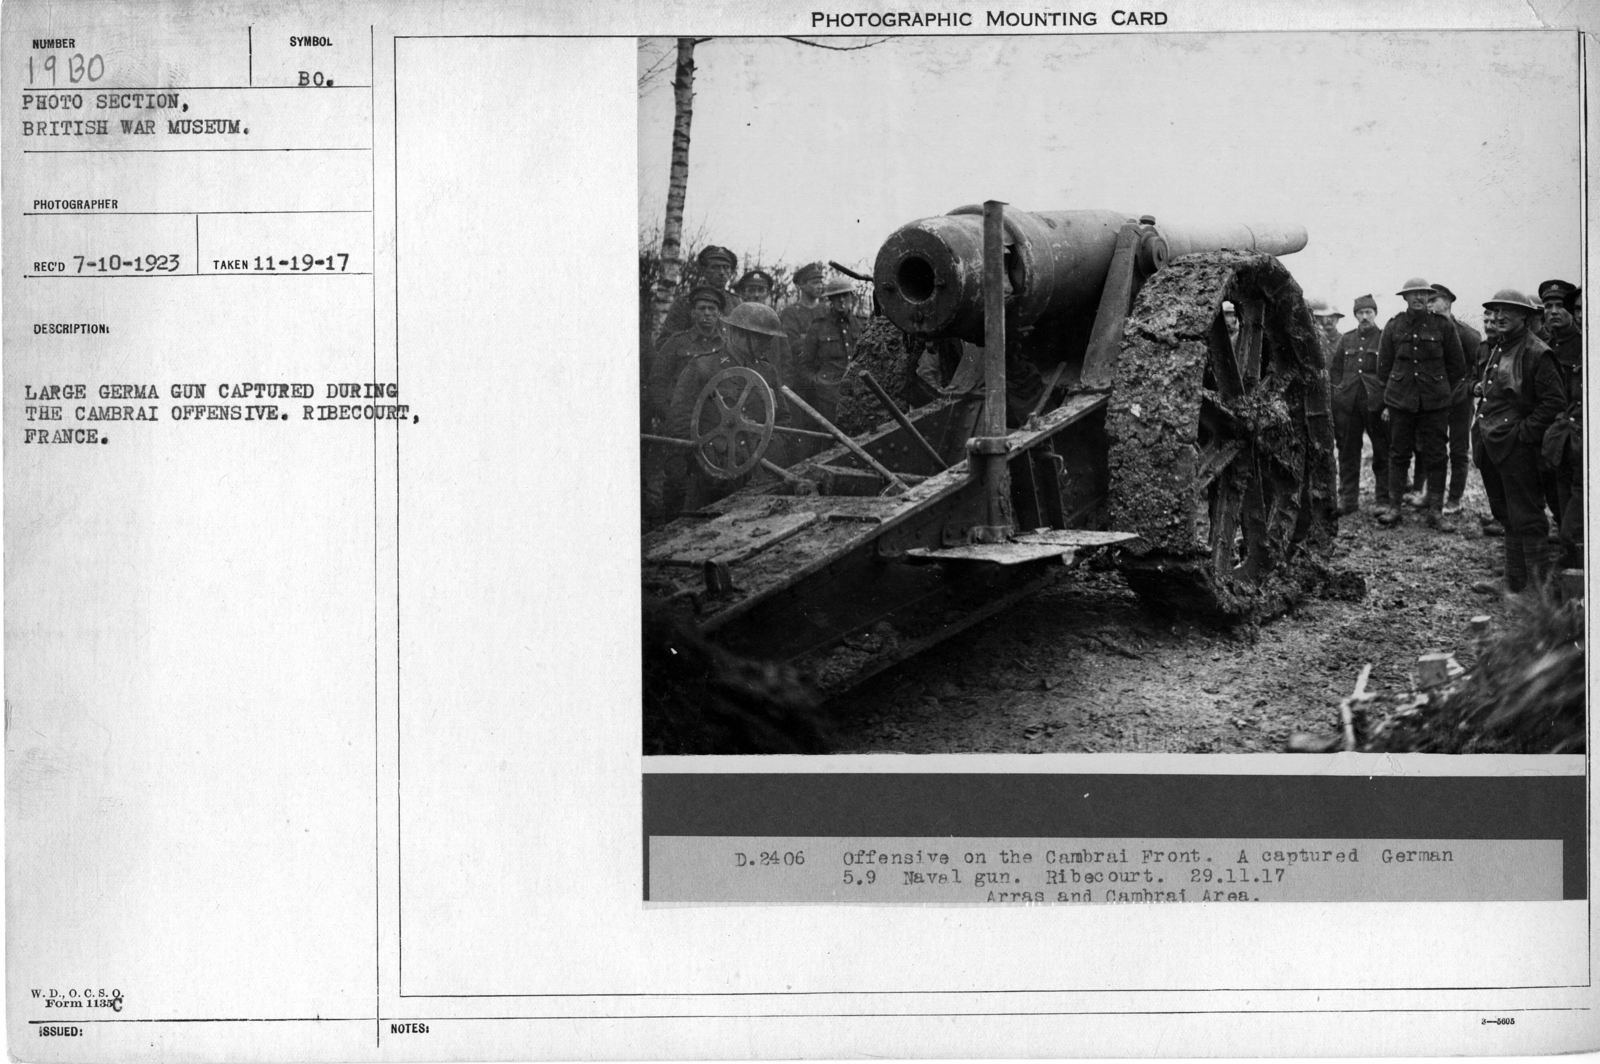 Large German gun captured during the Cambrai offensive. Ribecourt, France